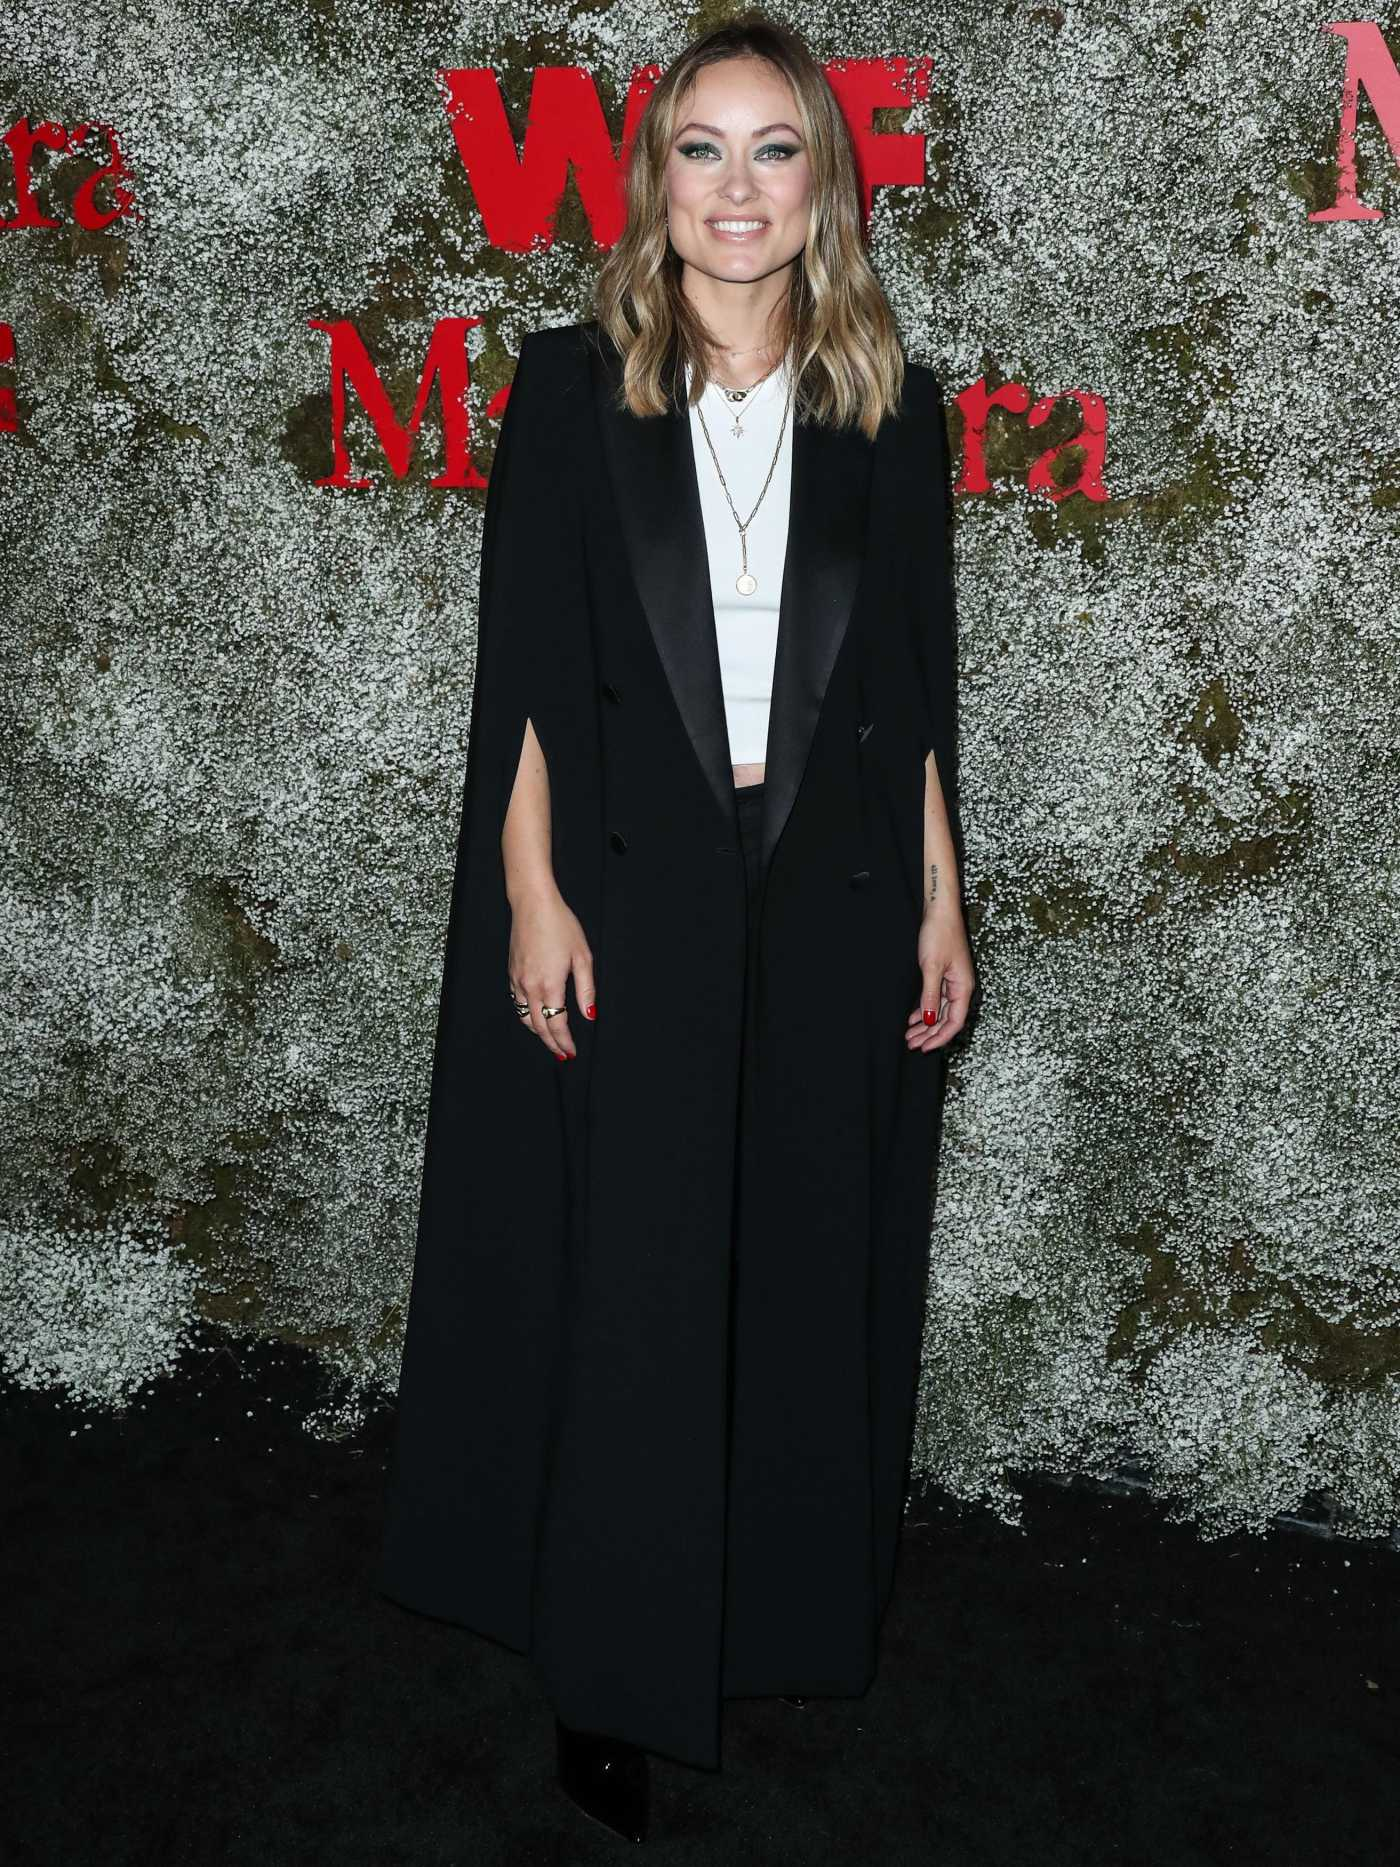 Olivia Wilde Attends Women in Film Max Mara Face of the Future in LA 06/11/2019